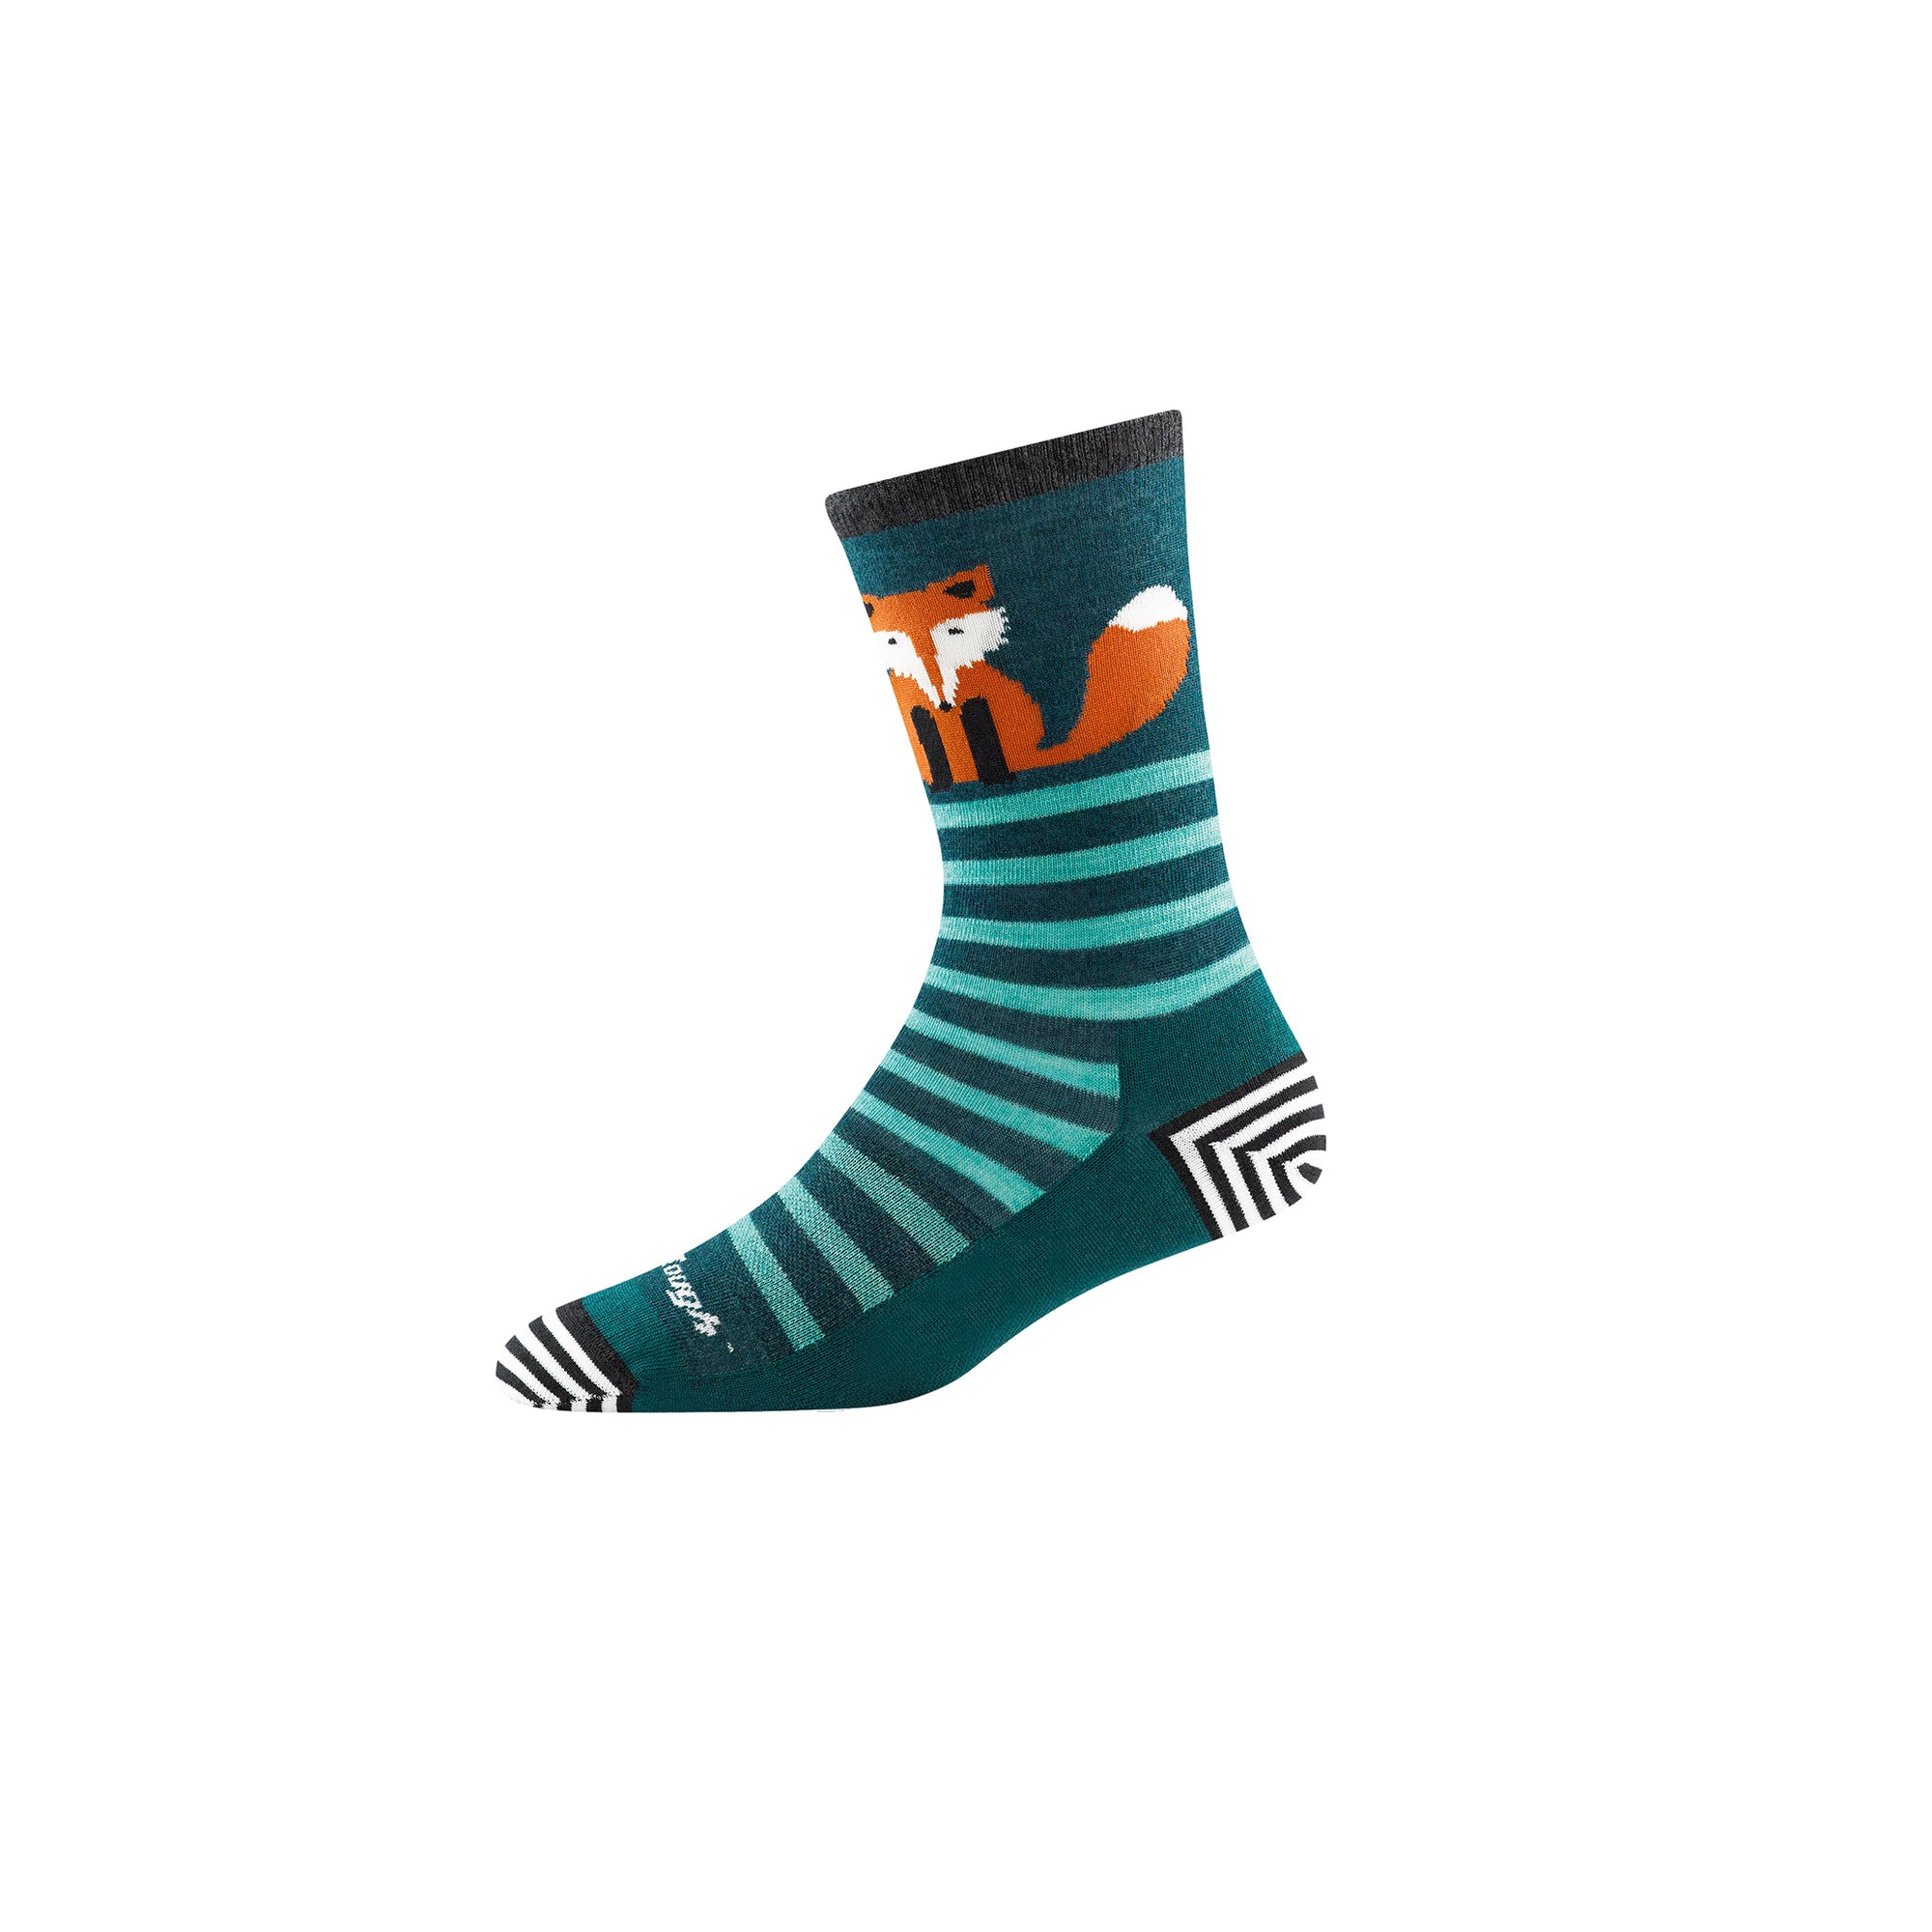 sideview of women's animal haus crew light socks in teal with stripes and fox graphic on ankle